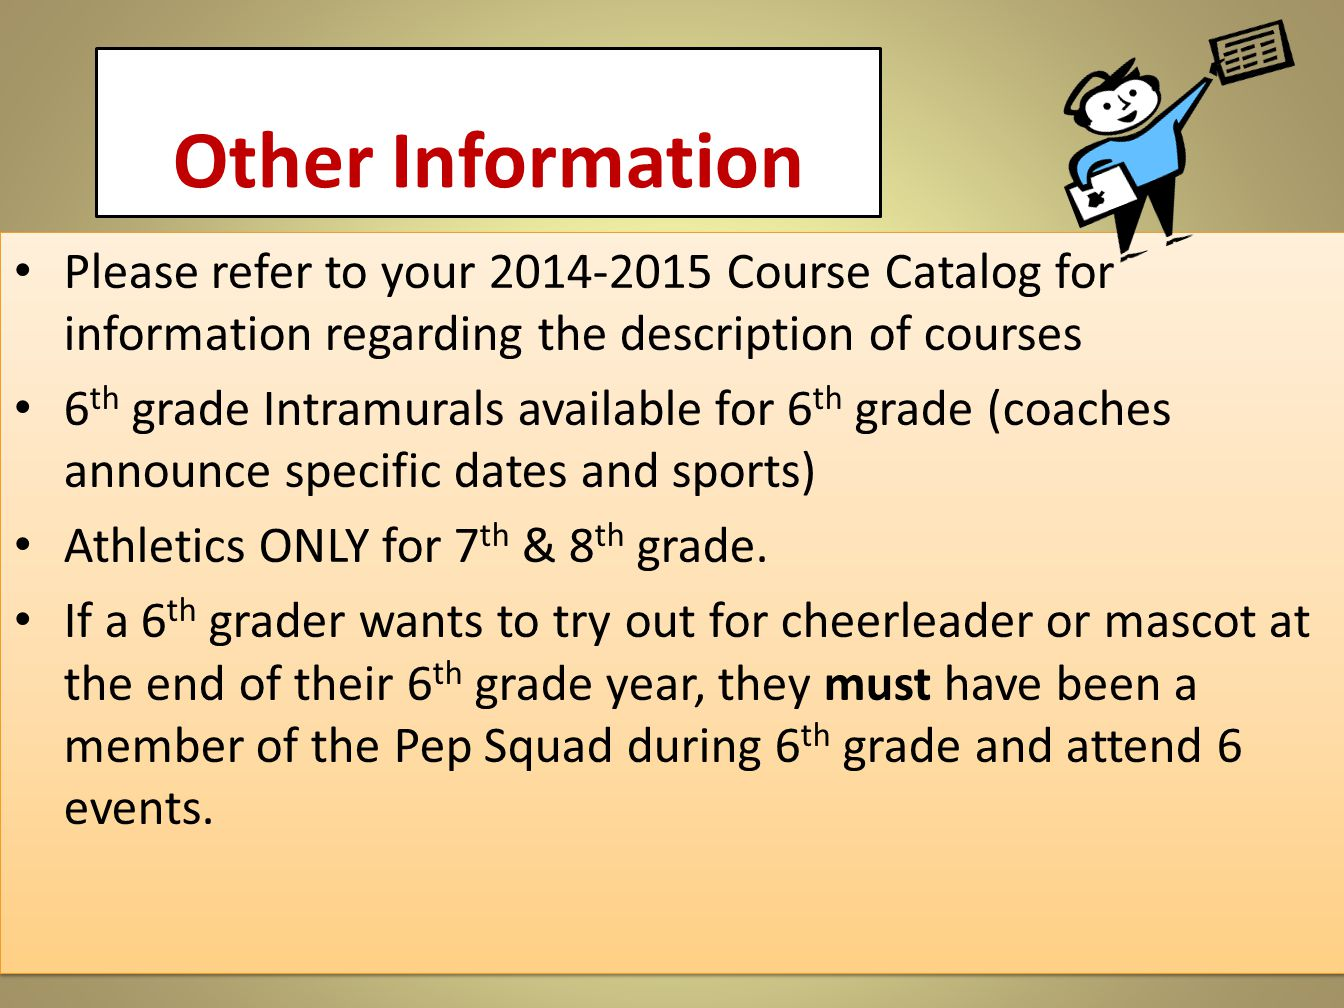 Other Information Please refer to your 2014-2015 Course Catalog for information regarding the description of courses.